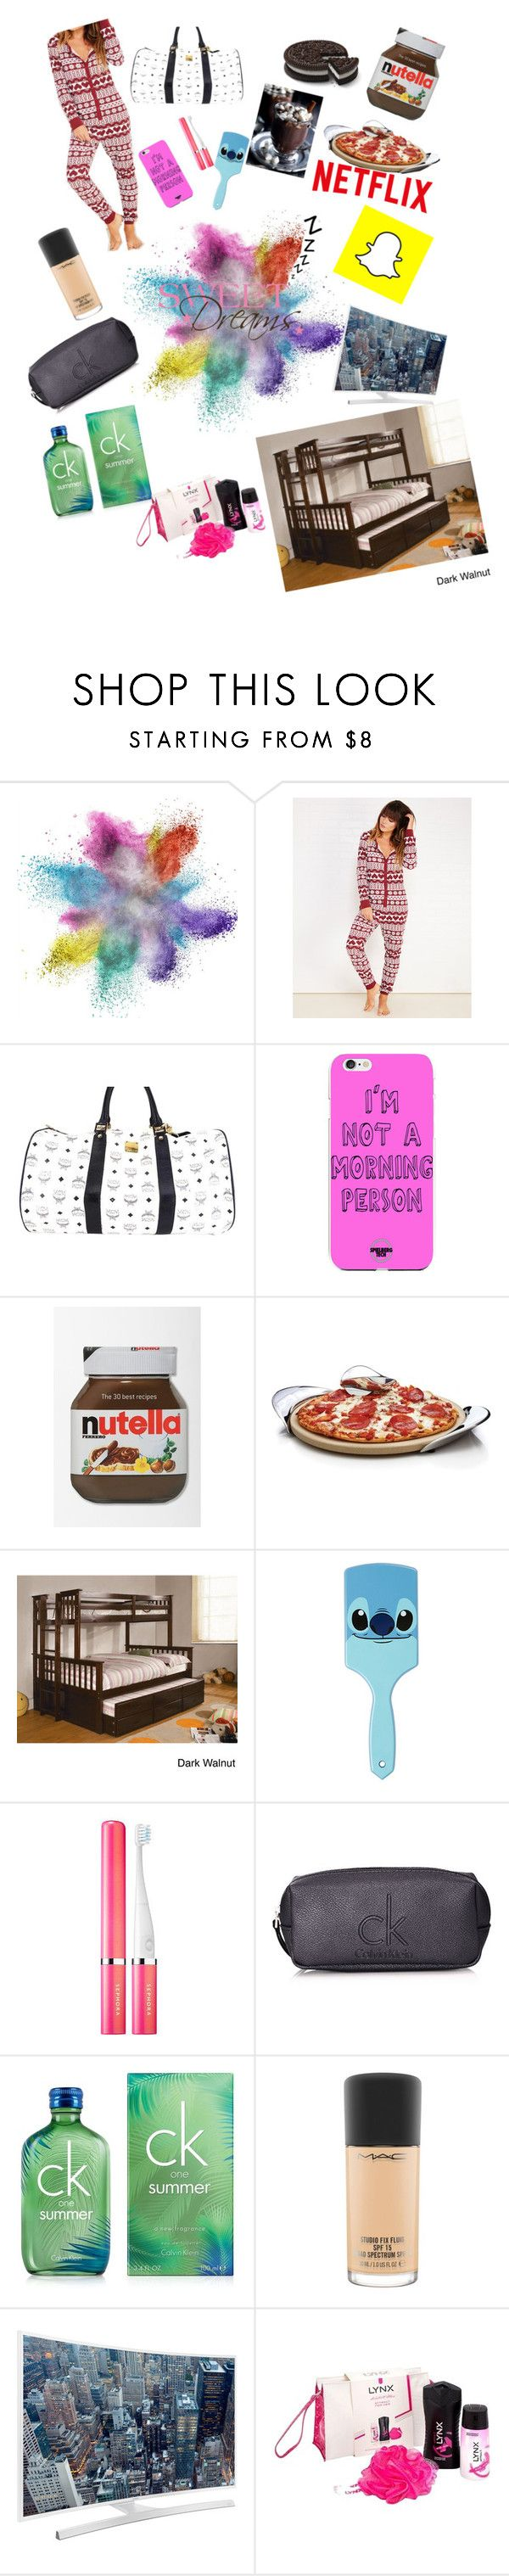 """""""sleepover!!!! """" by selinajones123 ❤ liked on Polyvore featuring Wet Seal, MCM, Nambé, Furniture of America, Disney, Sephora Collection, Calvin Klein, MAC Cosmetics, Samsung and Lynx"""